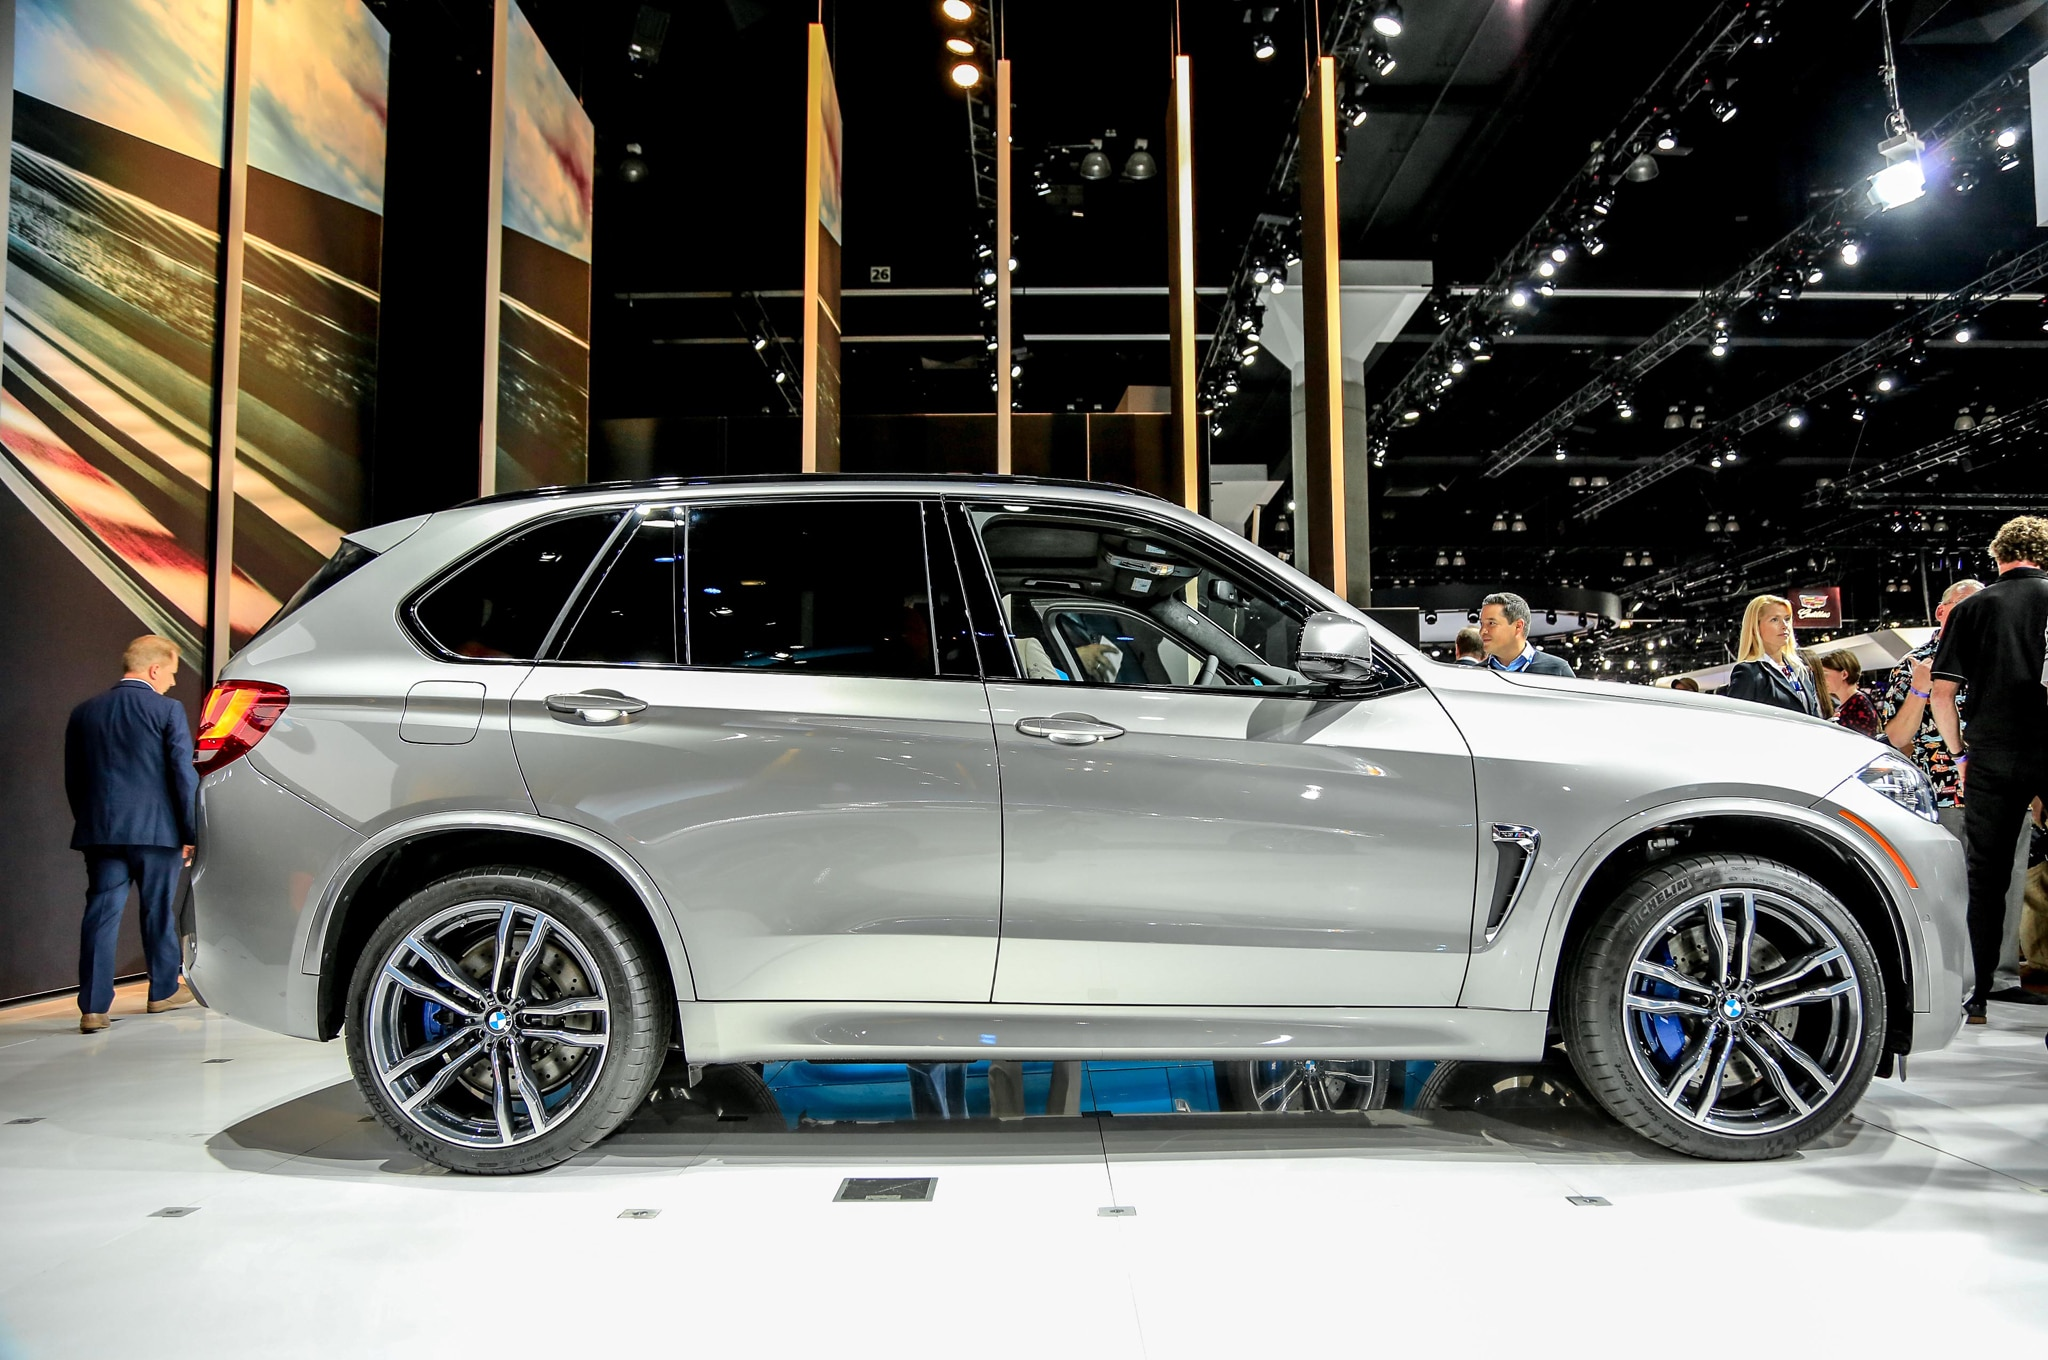 2015 BMW X5 M Side Profile